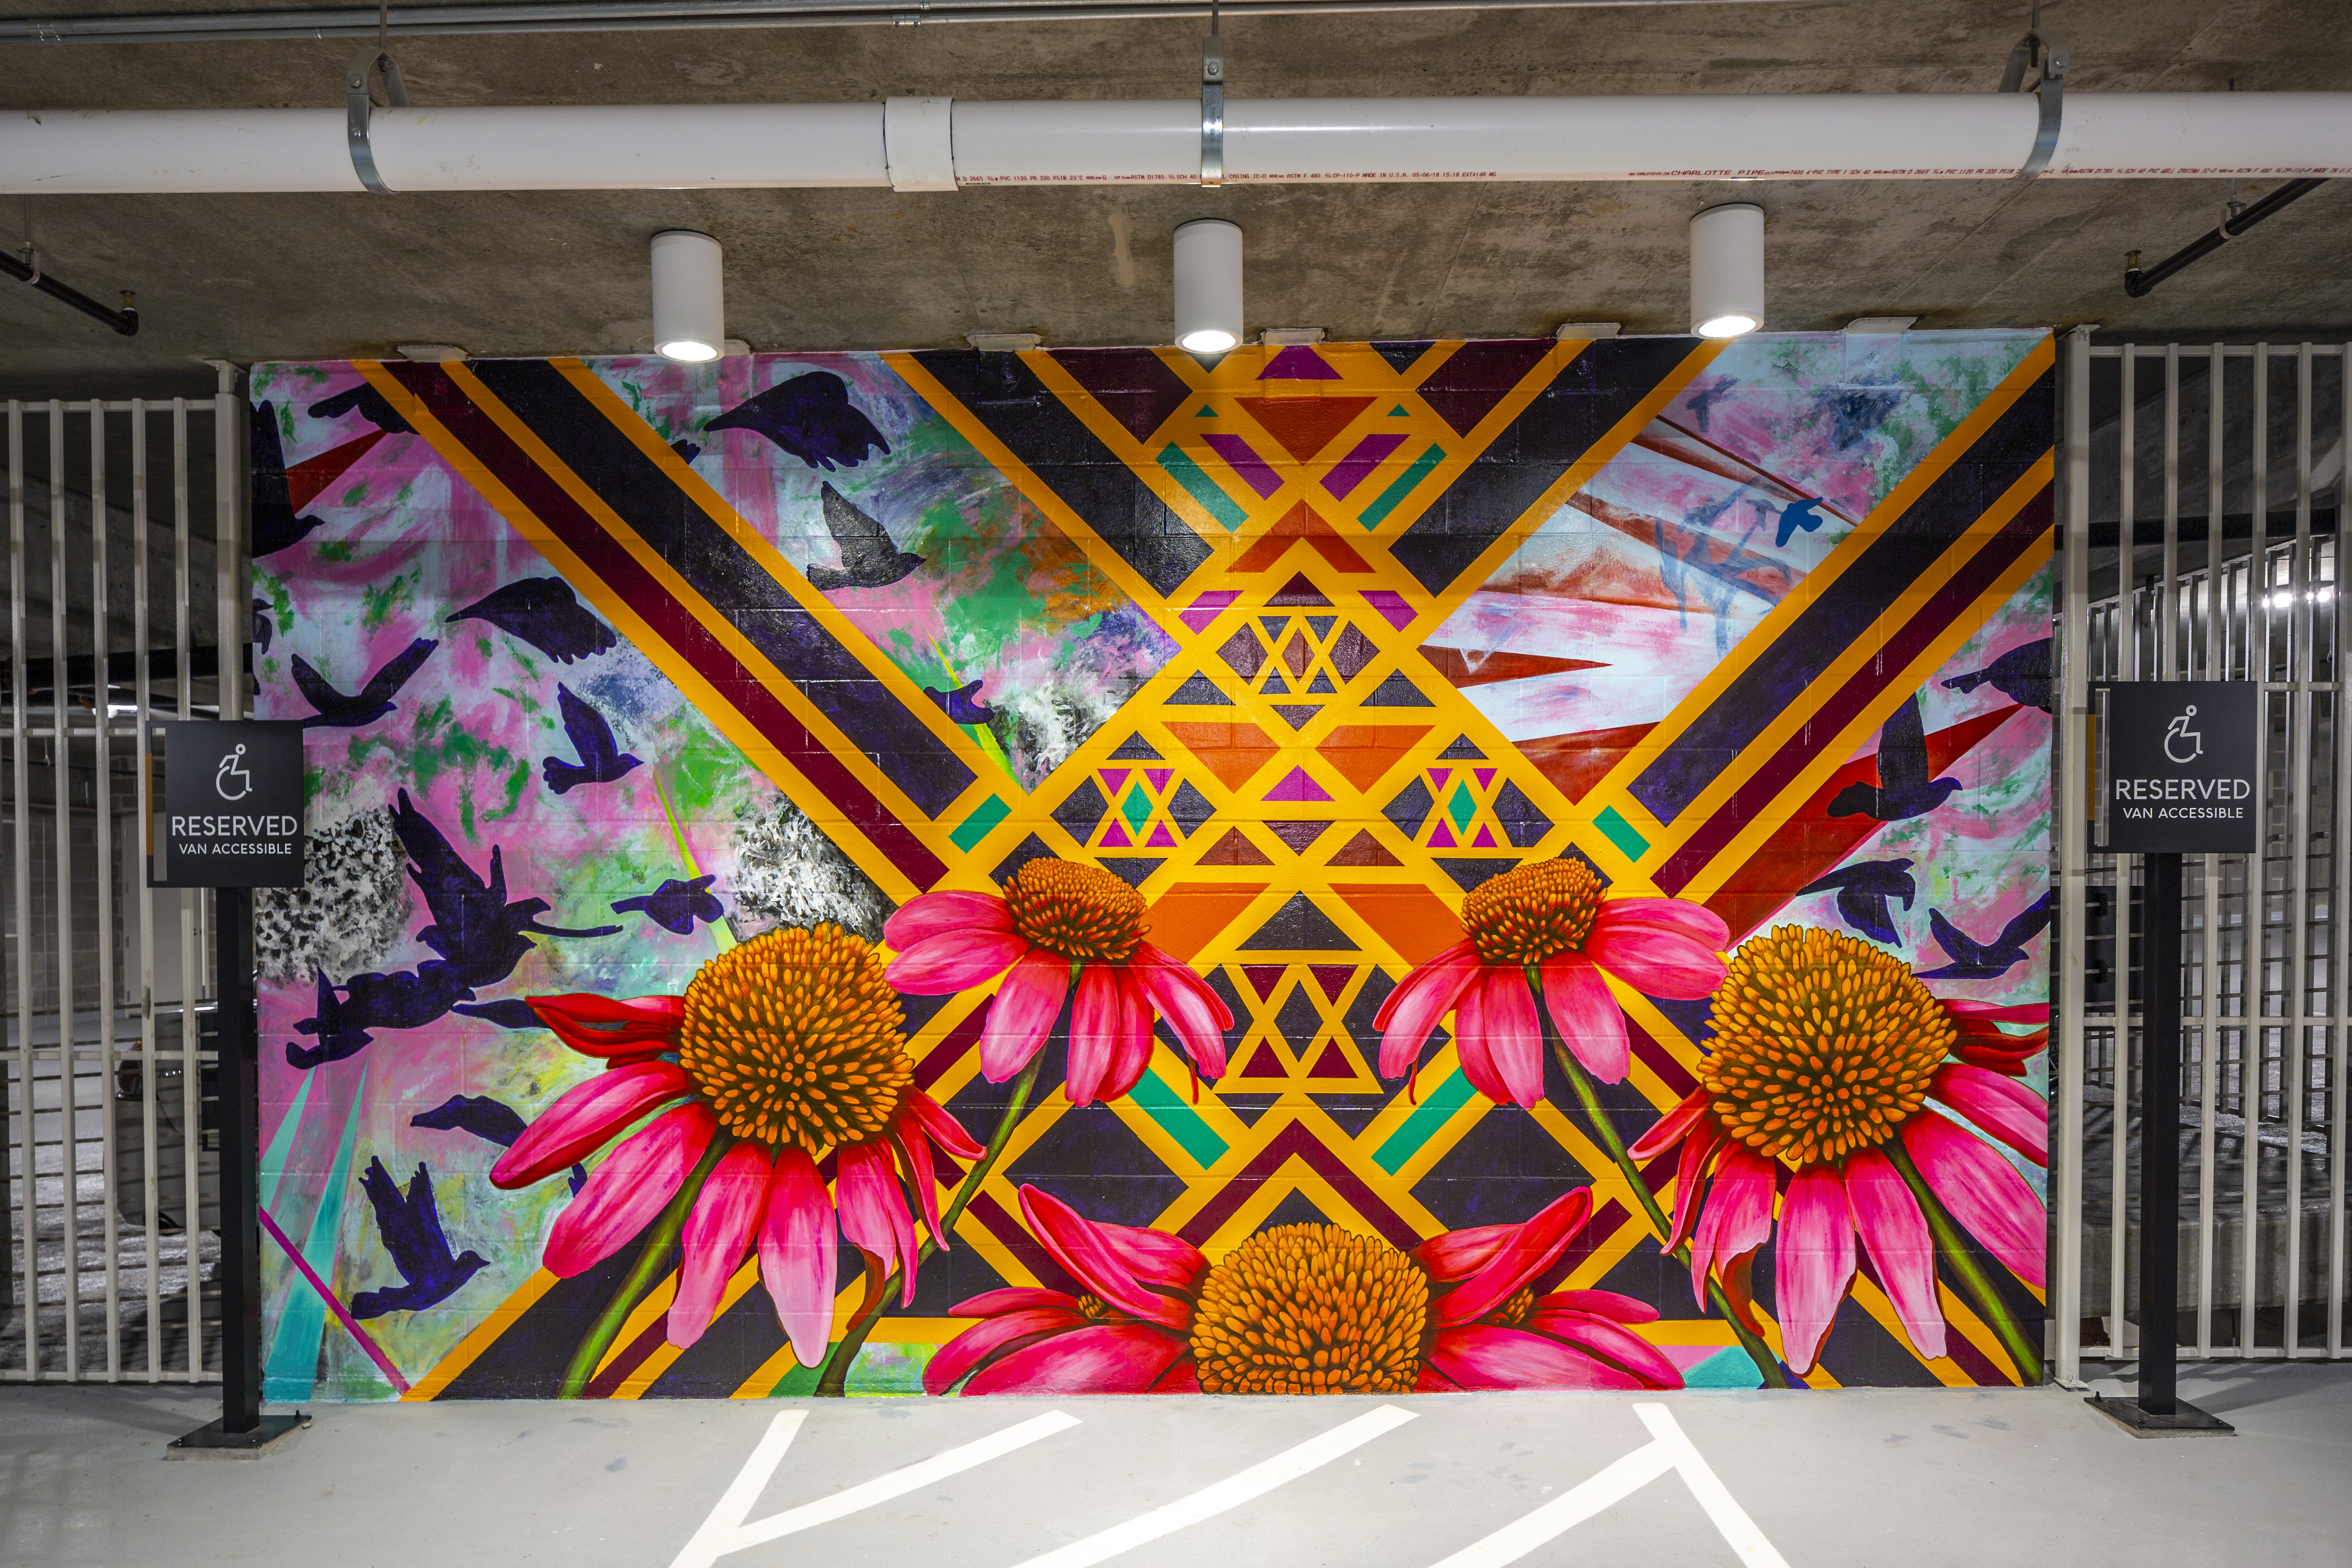 Drewery Place Garage Artwork Flowers by Patricia Barrera